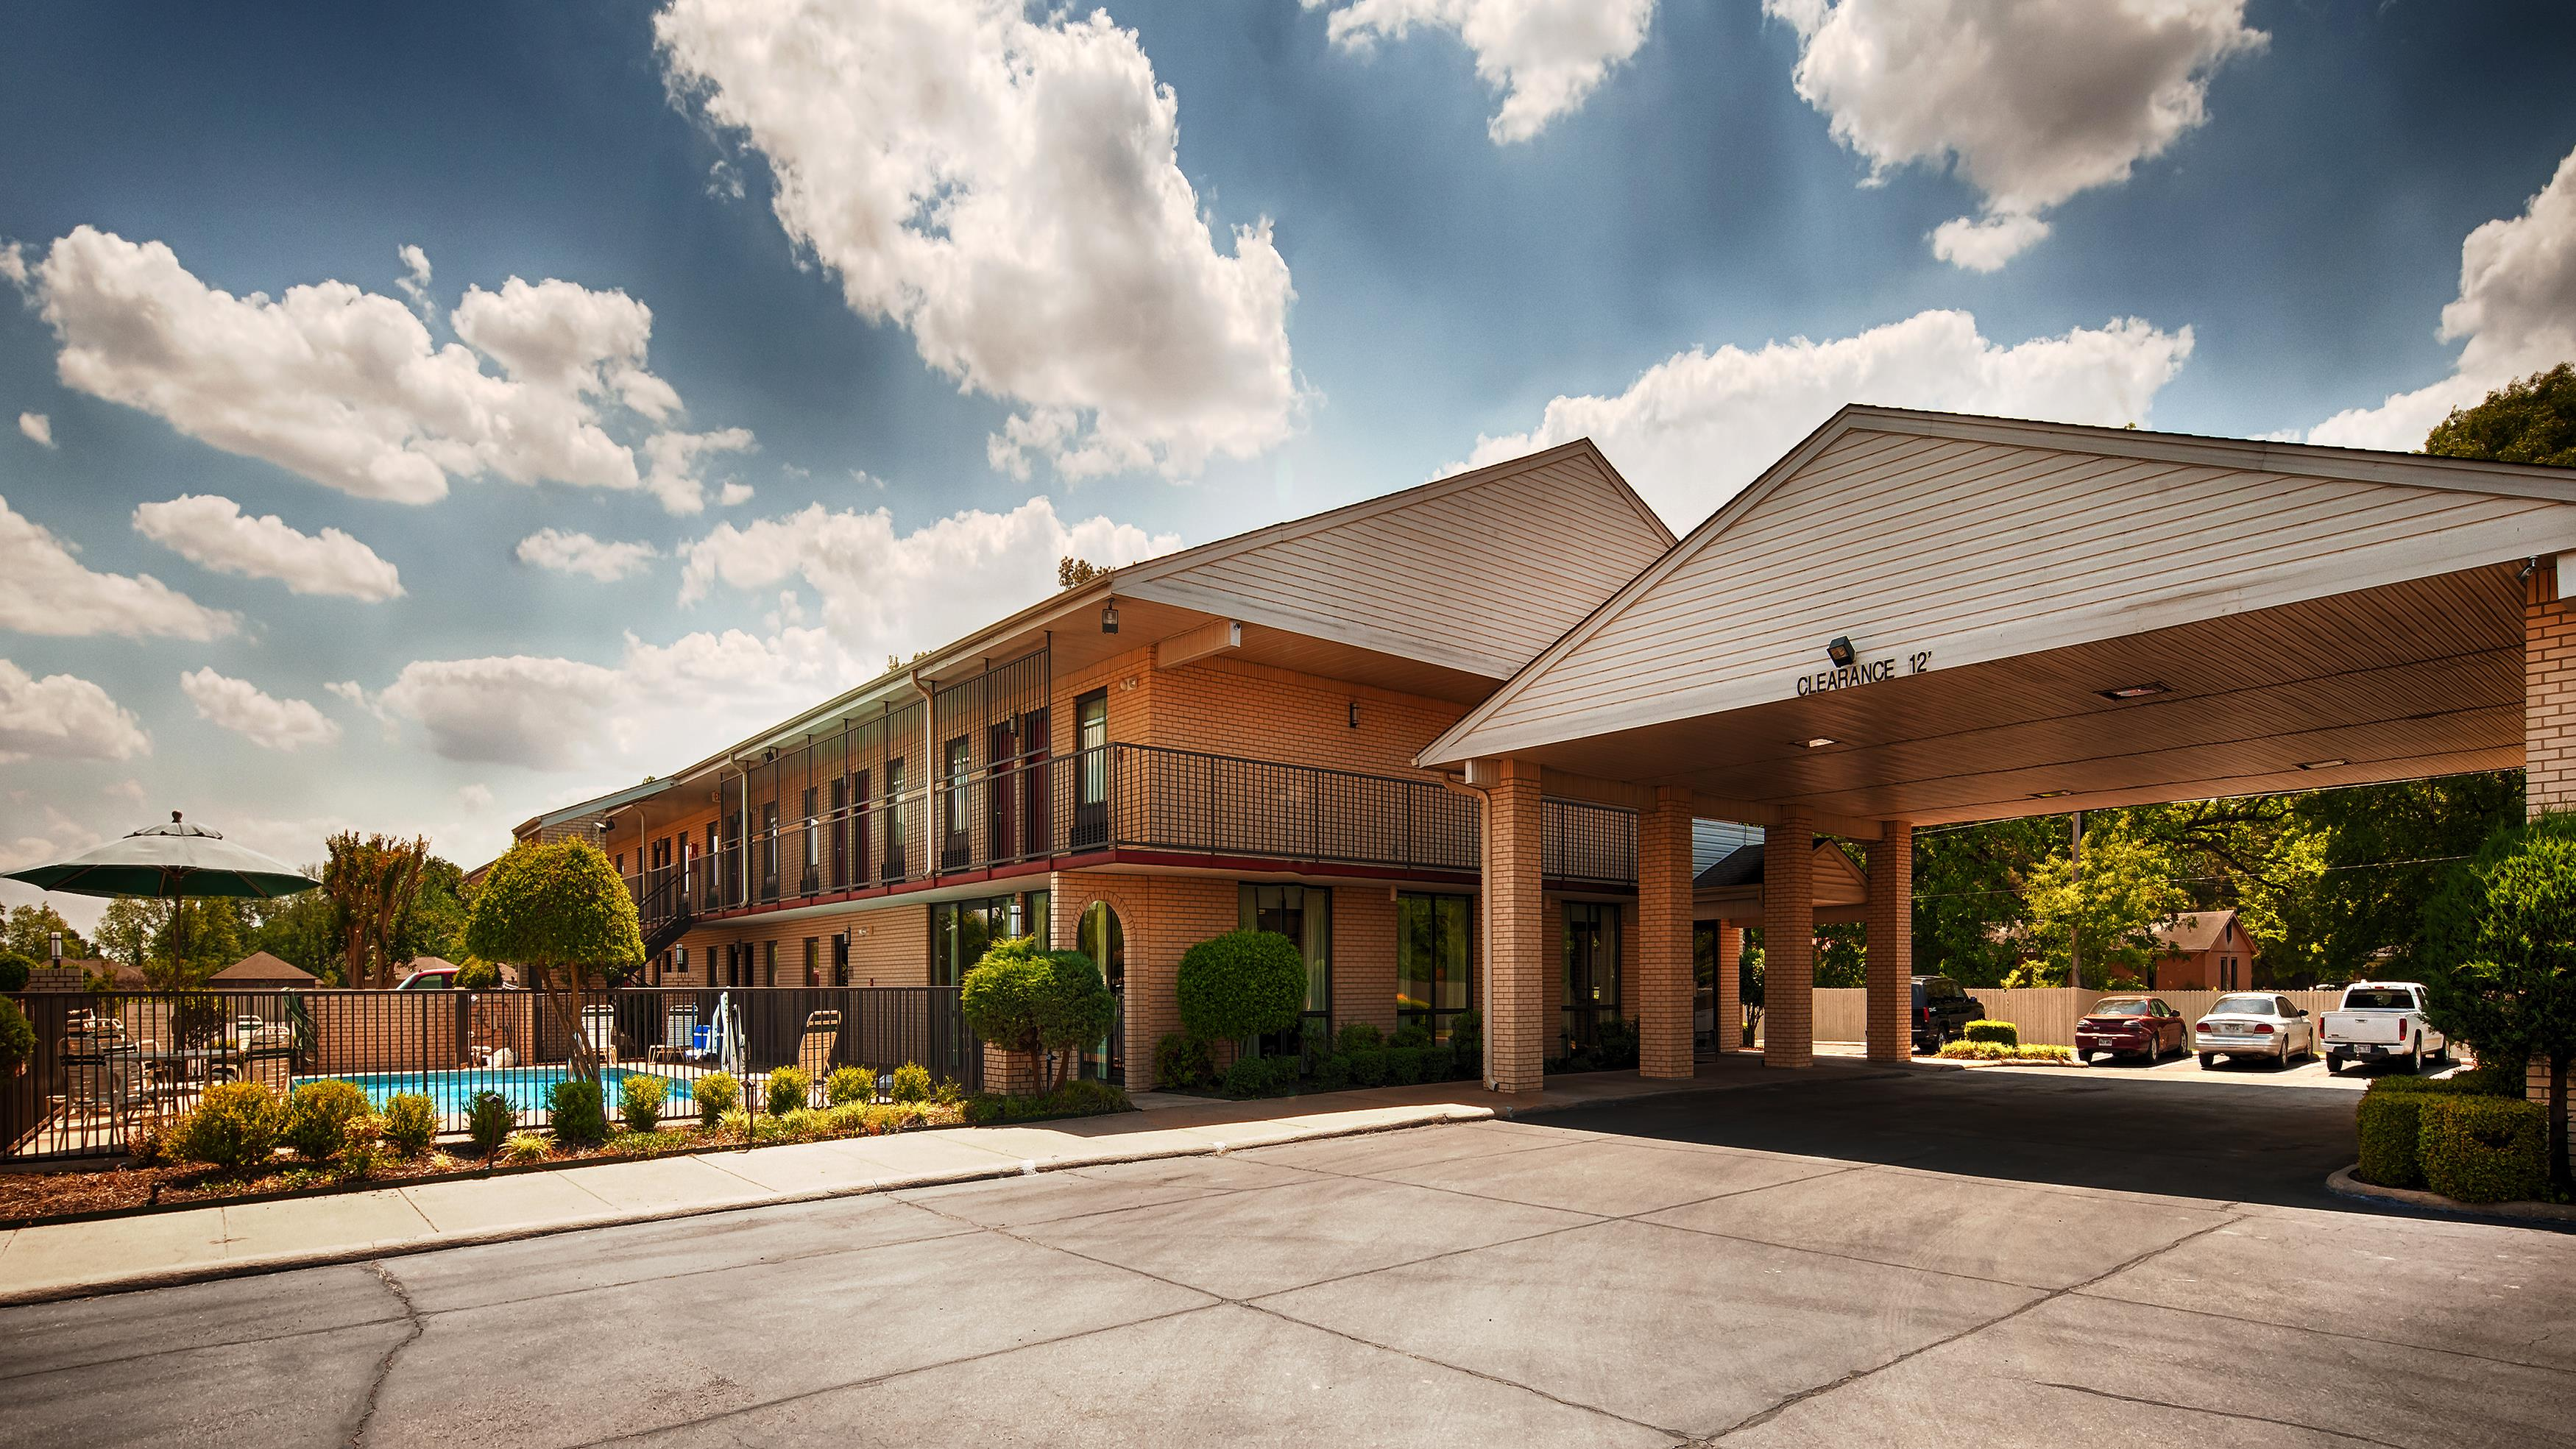 Best Western Inn, West Helena AR